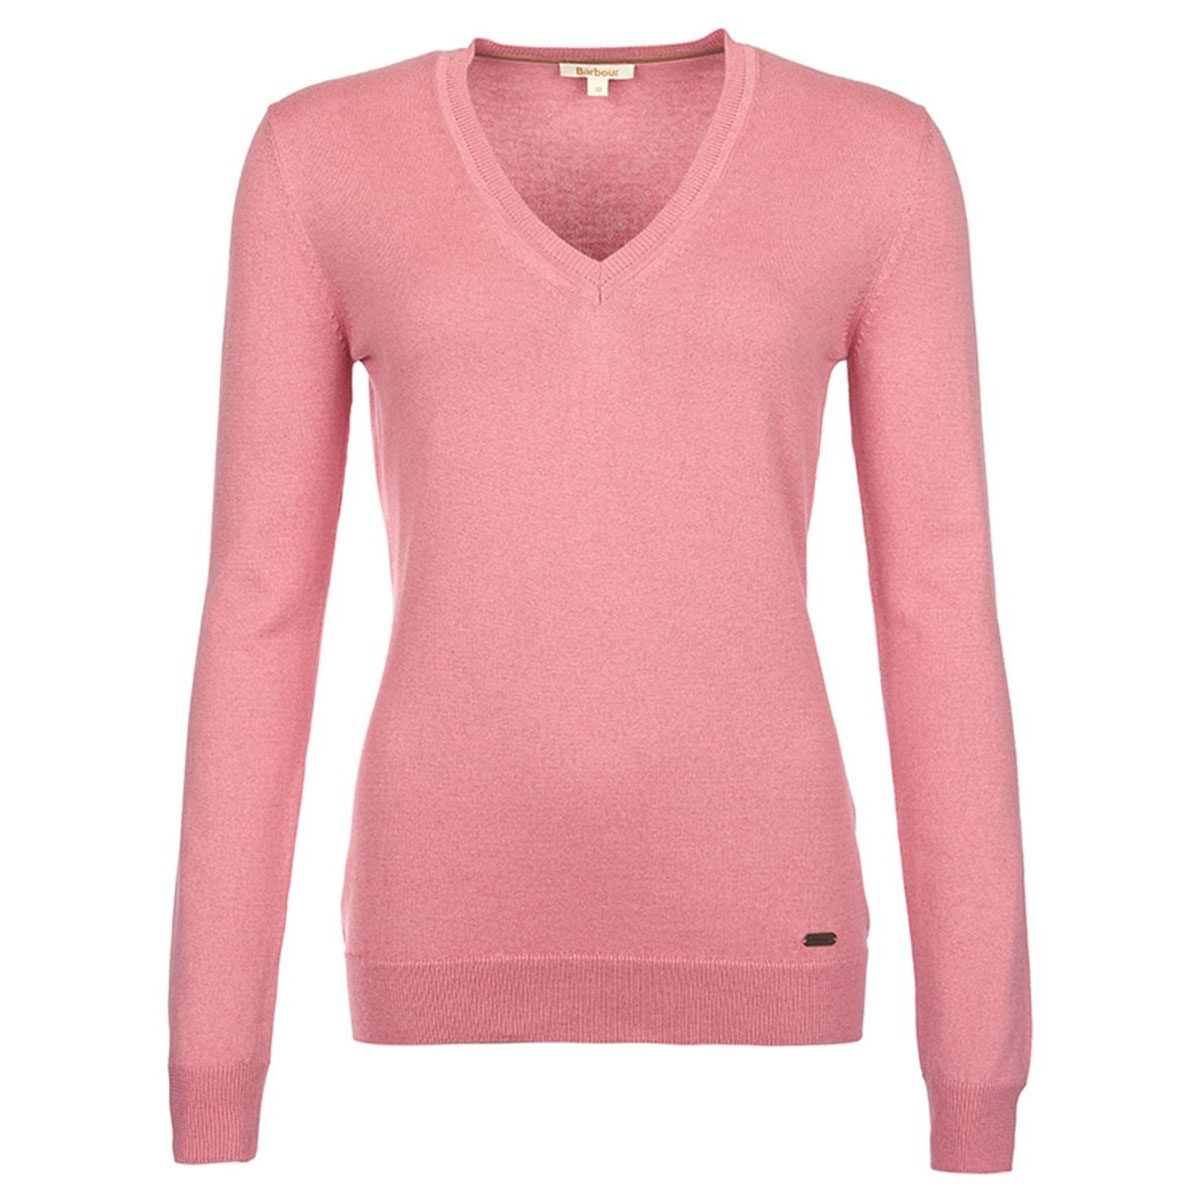 Barbour Barbour Cotton Cashmere V Neck Vintage Rose Barbour Lifestyle: From the Essentials collection